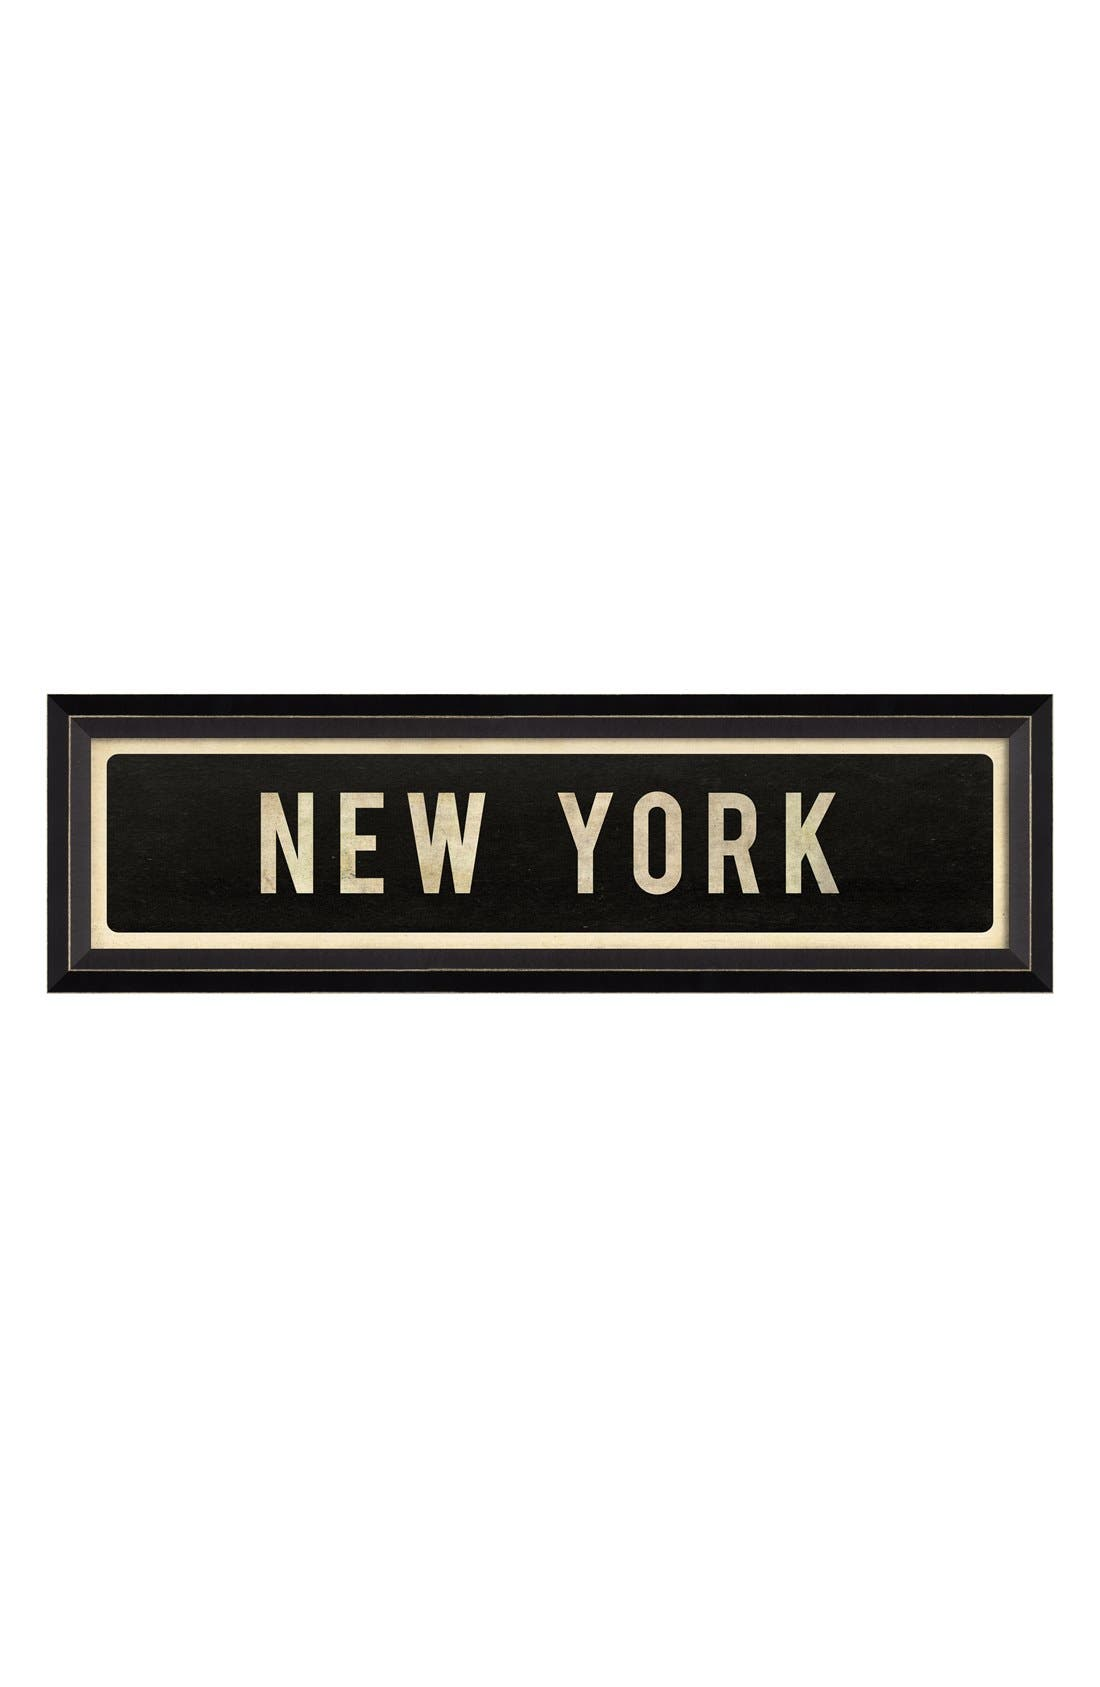 Main Image - Spicher and Company 'New York' Vintage Look Street Sign Artwork